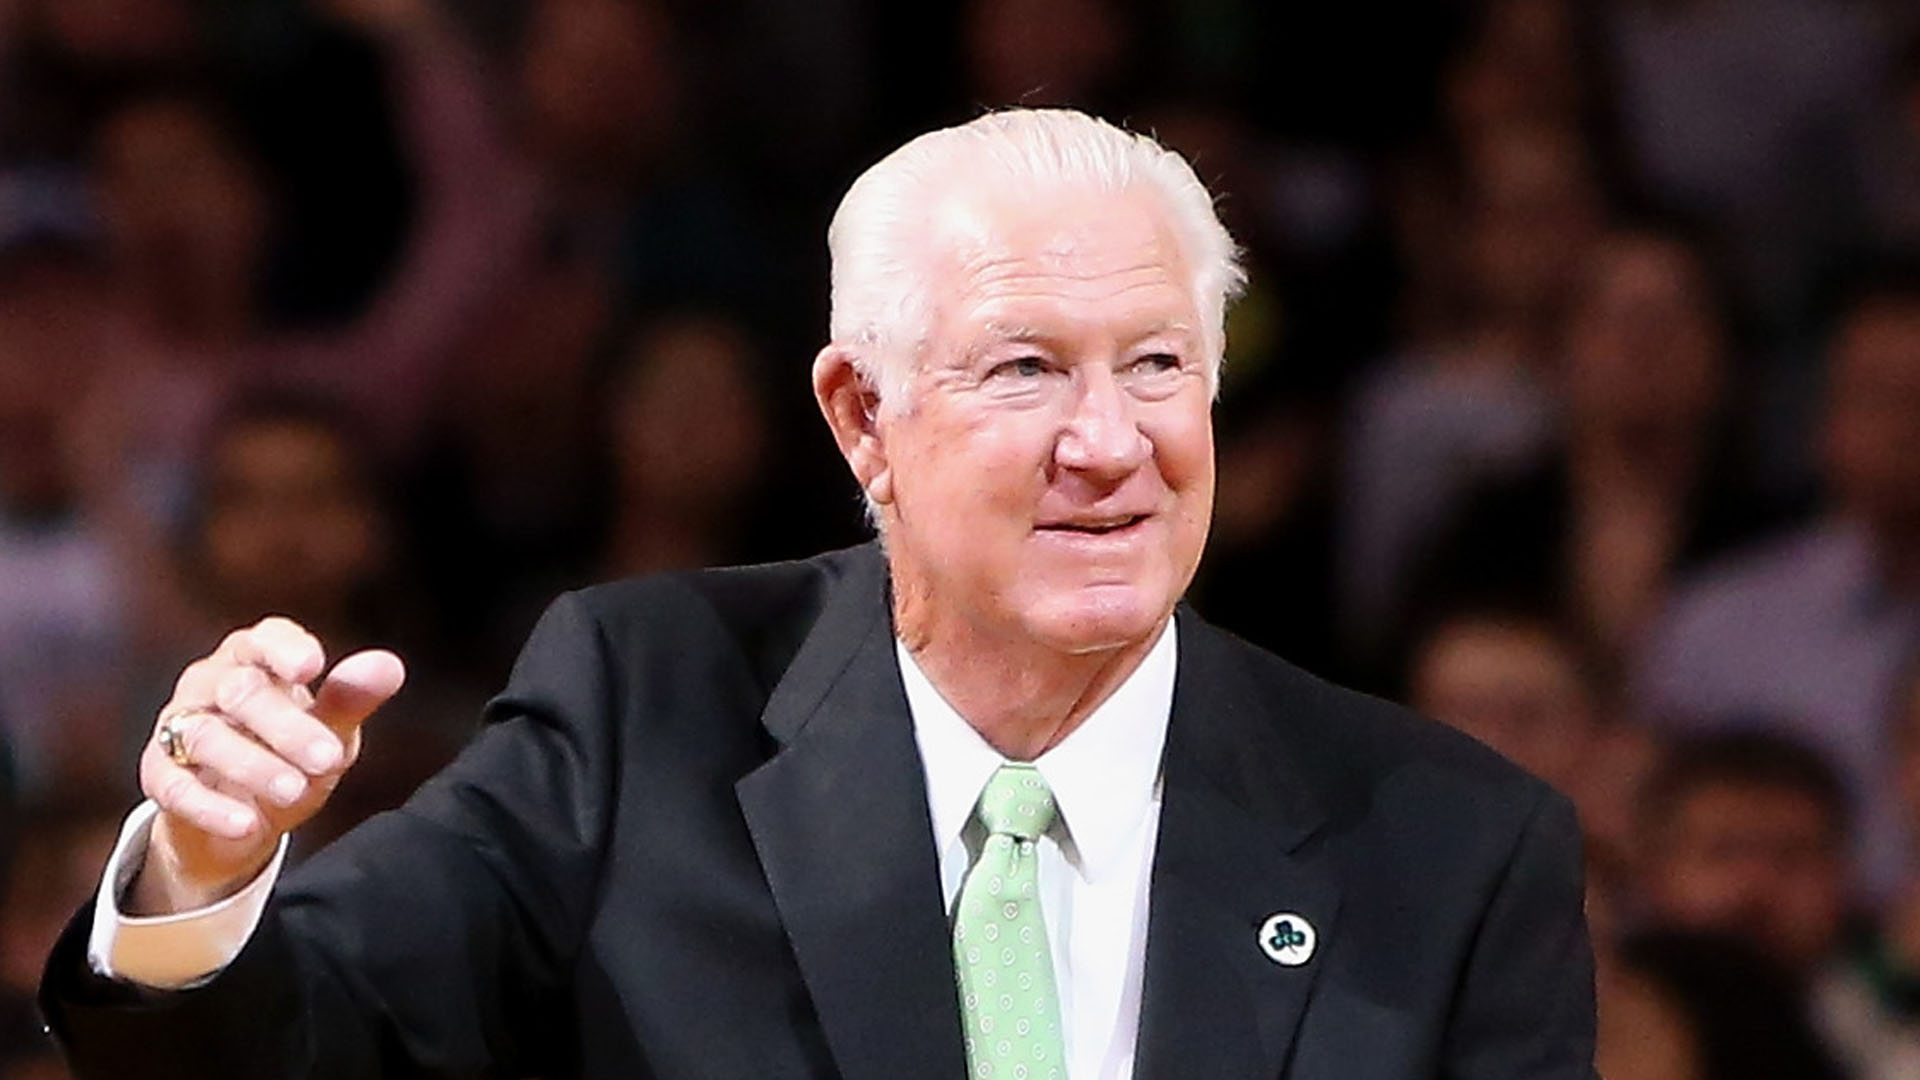 Celtics Hall of Famer Havlicek dies aged 79